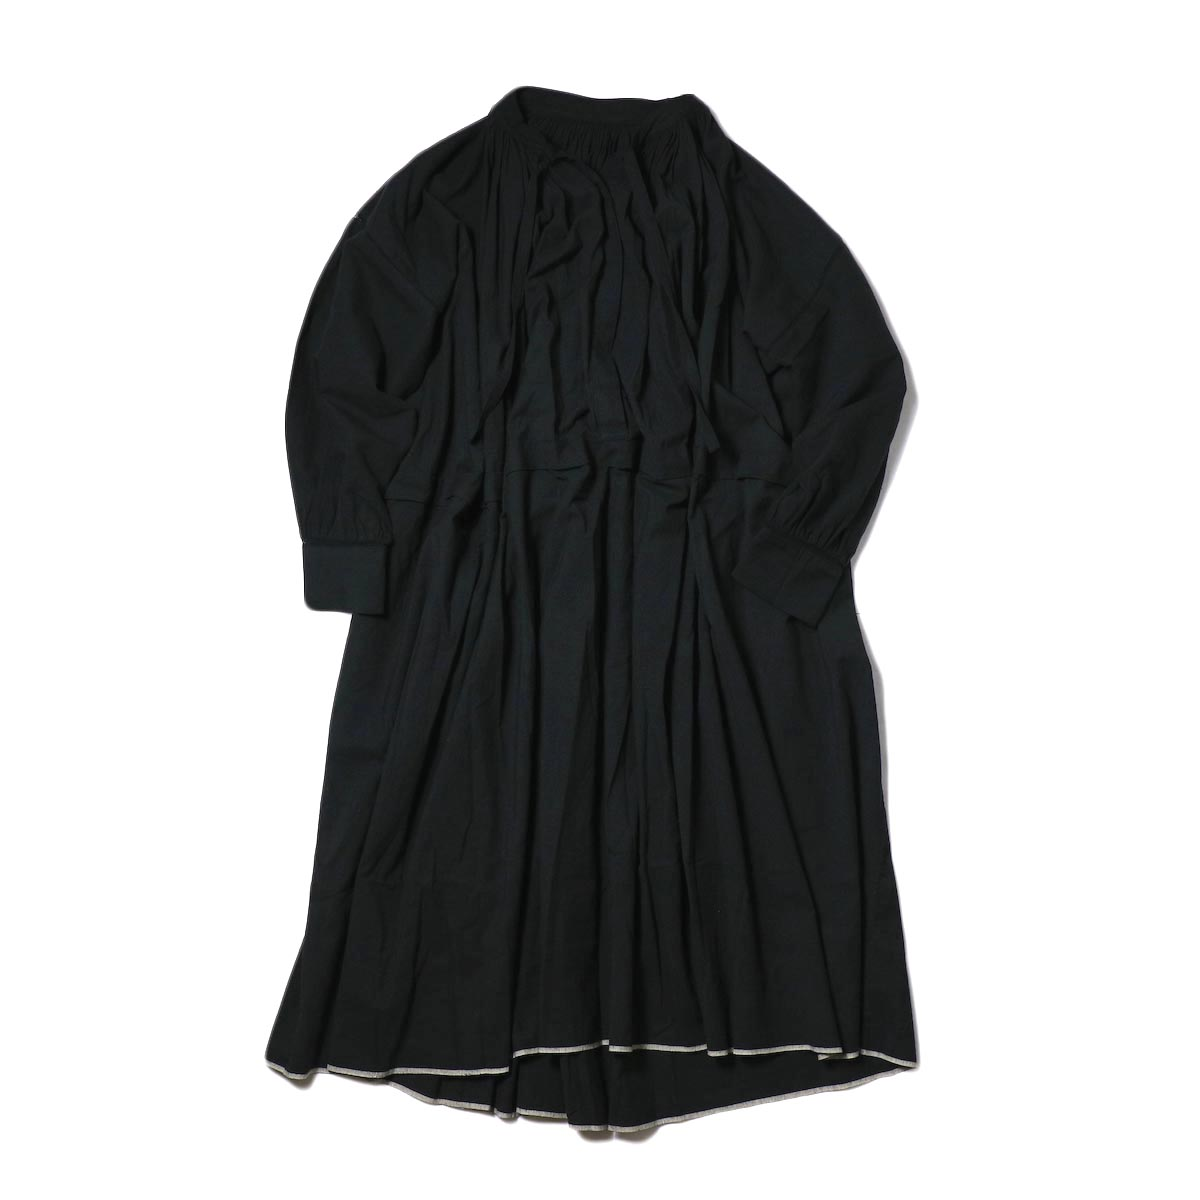 maison de soil / NECK GATHERED DRESS (black)